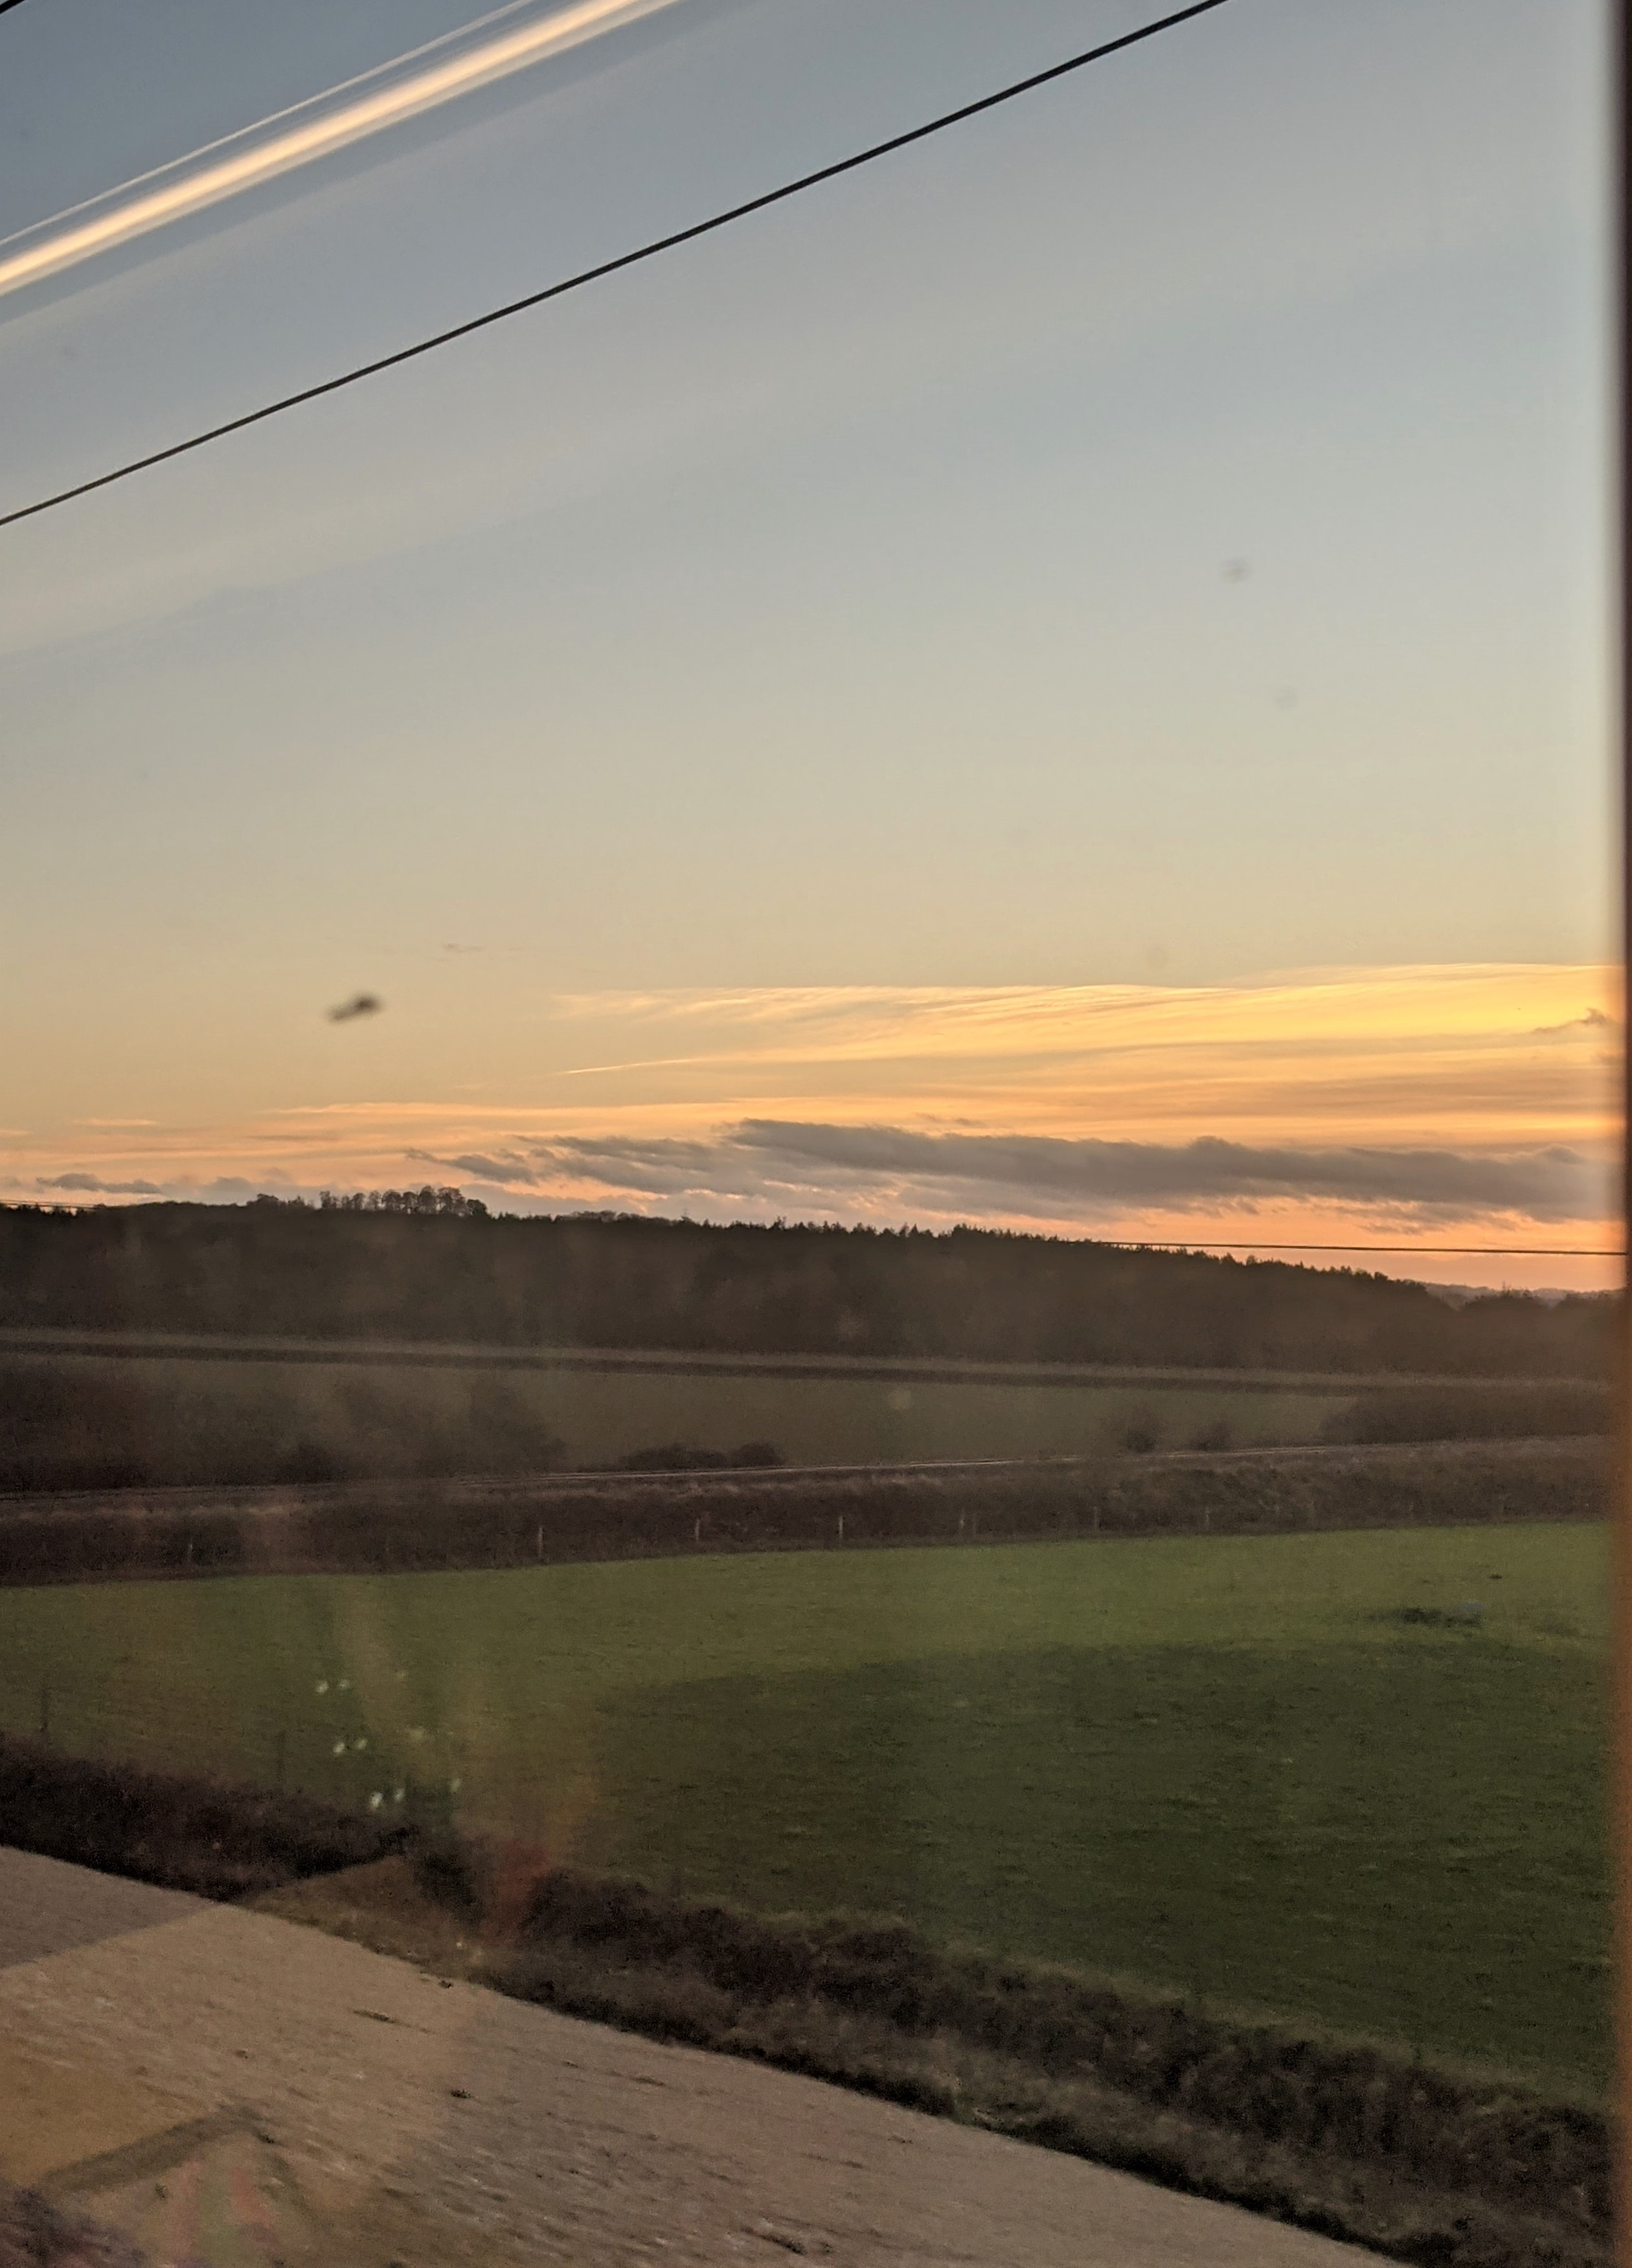 A sunset and green field seen through the train window